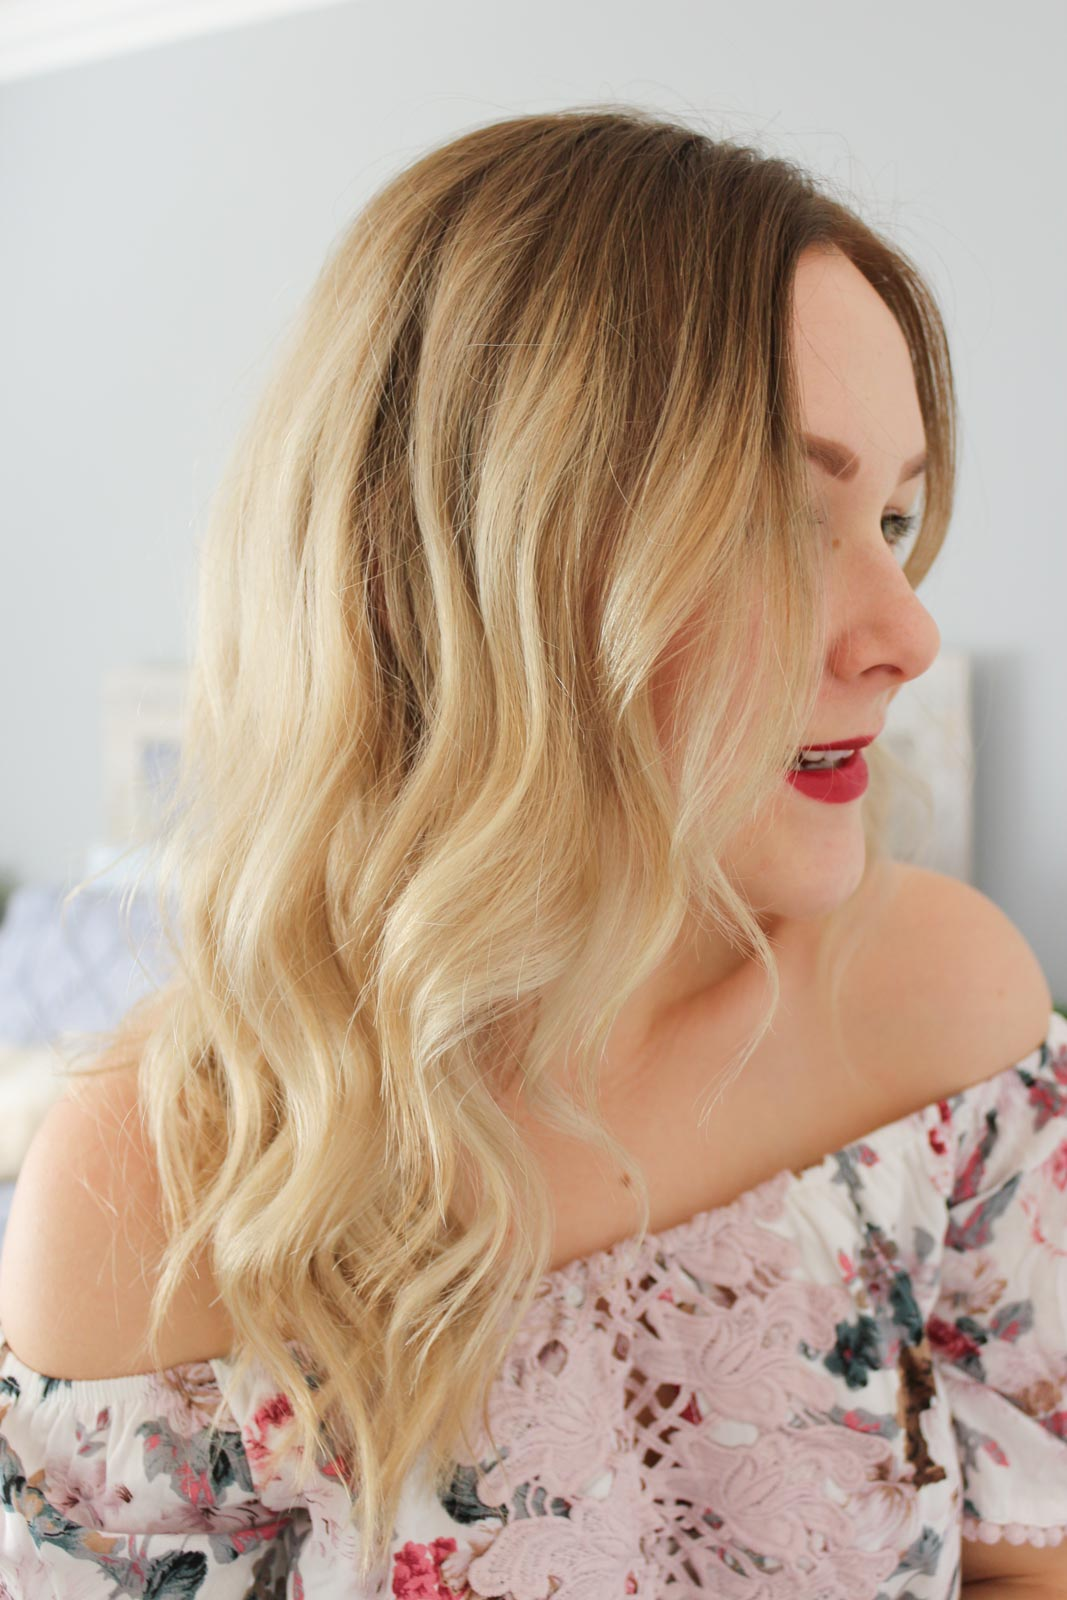 Hair Colour Change & Current Styling Routine | Cate Renée